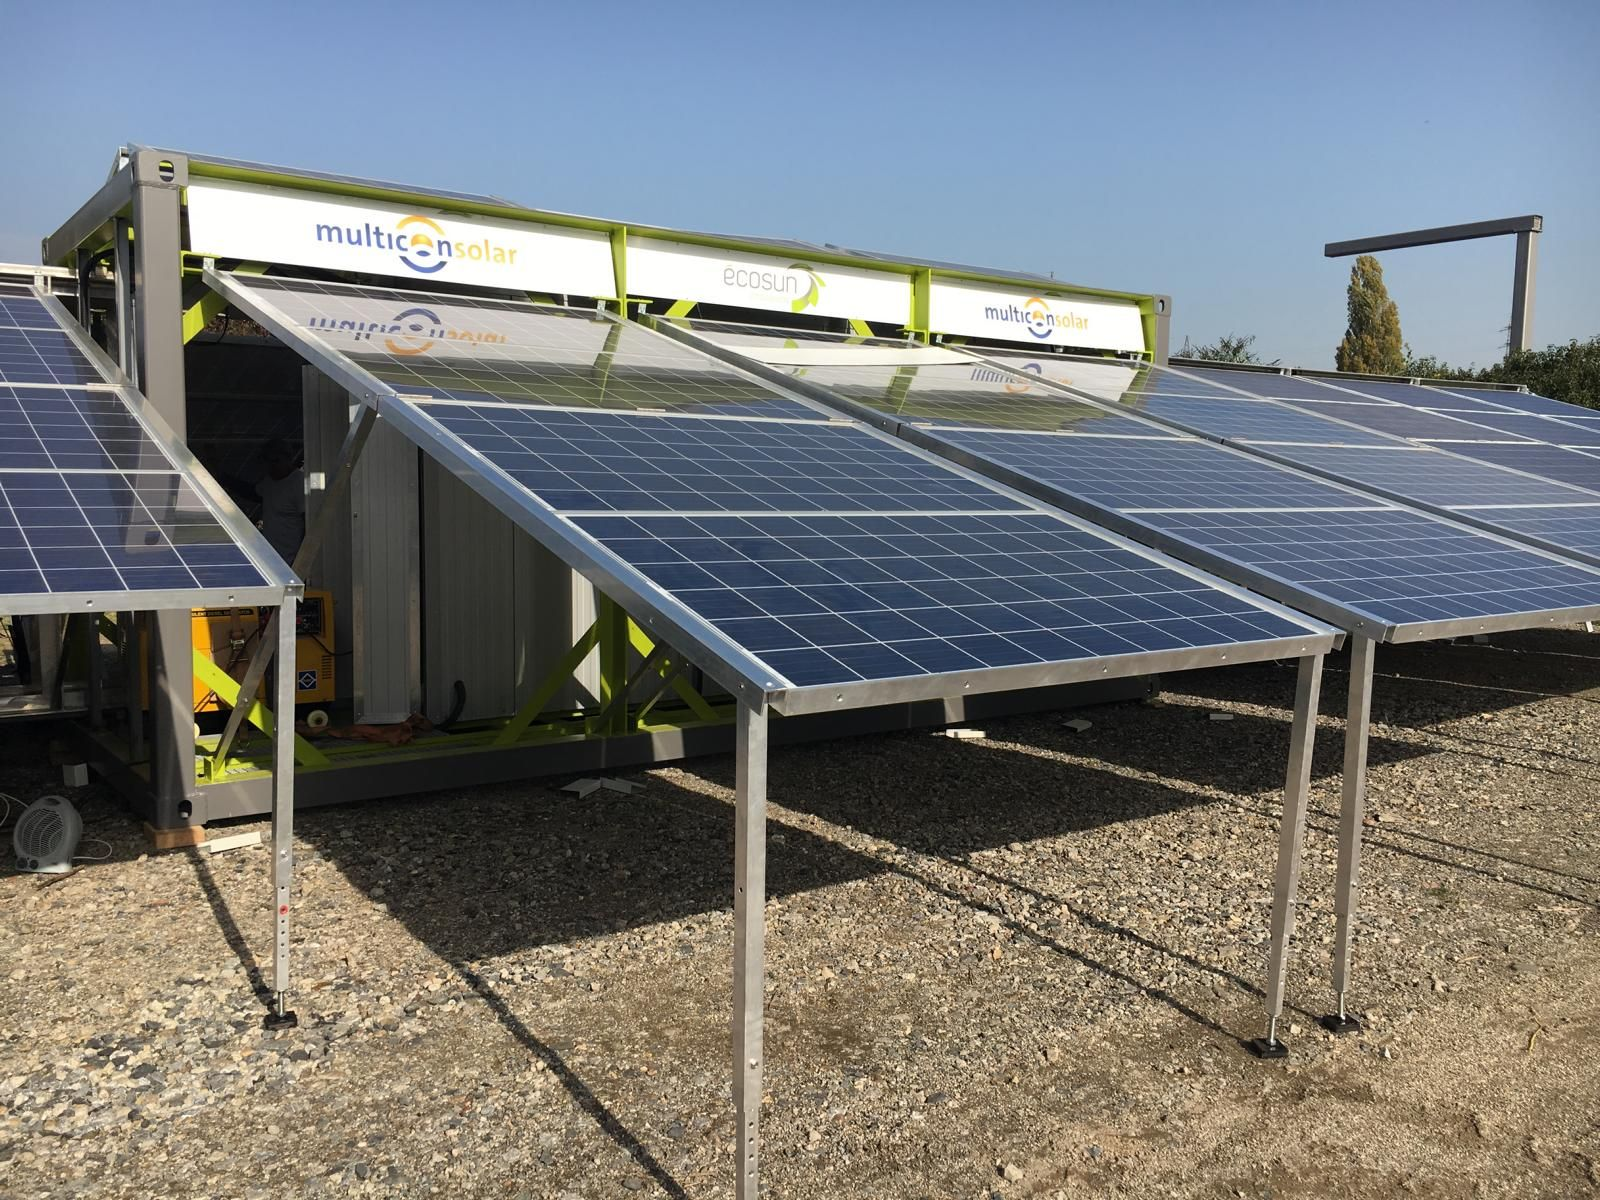 A New Hybrid Solarcontainer Made By Multiconsolar 102 Solar Panels 10 Kva Diesel Engine 45 Kwh Lifepo4 Storage Turn Solar Generator Solar Solar Panels